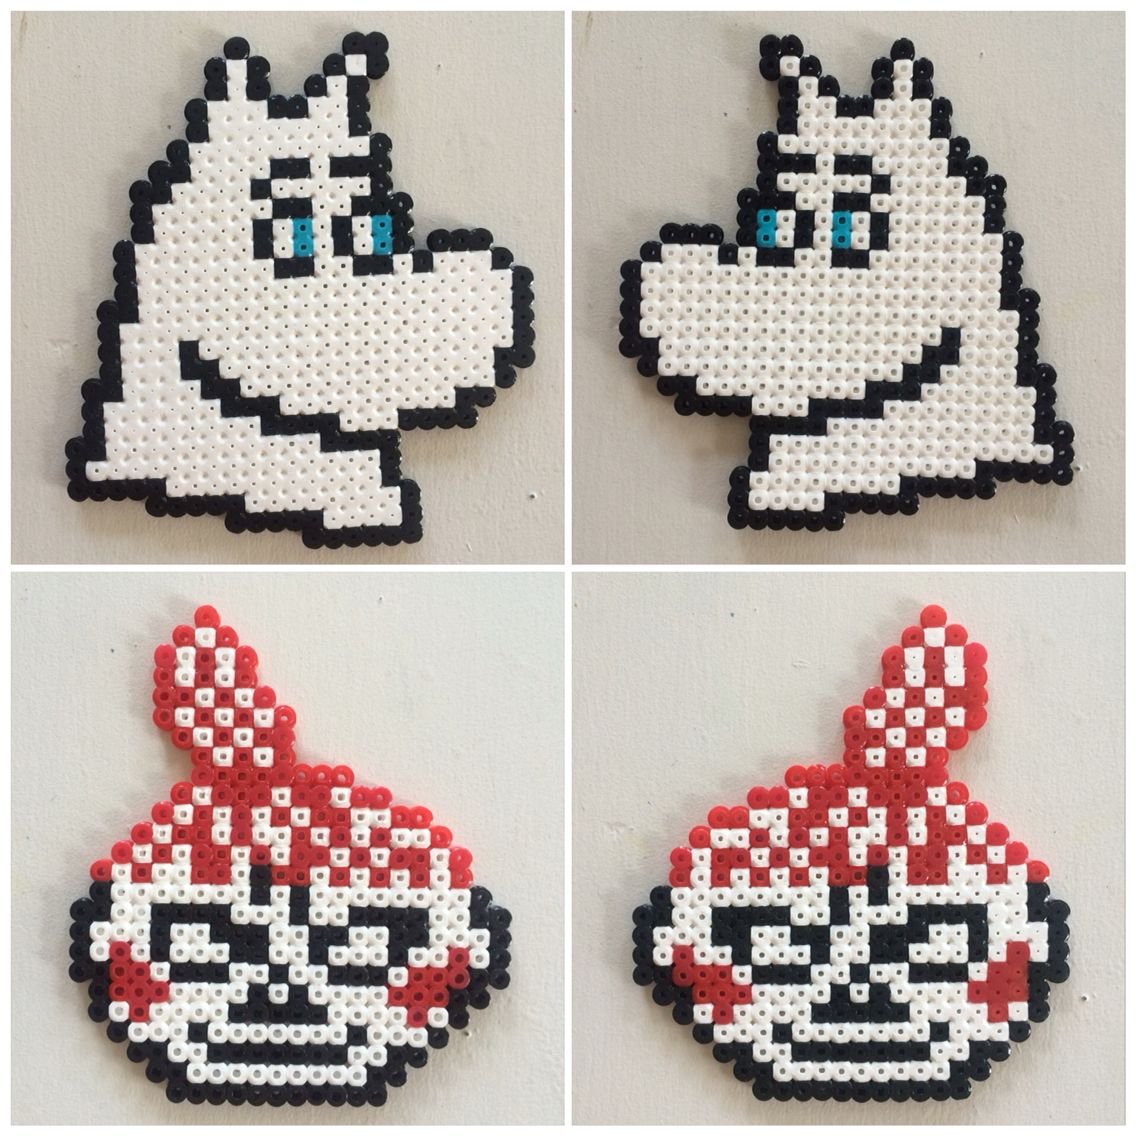 Hama beads perleplade Mumitrold og Lille My ansigt. Faces of Moomin ...